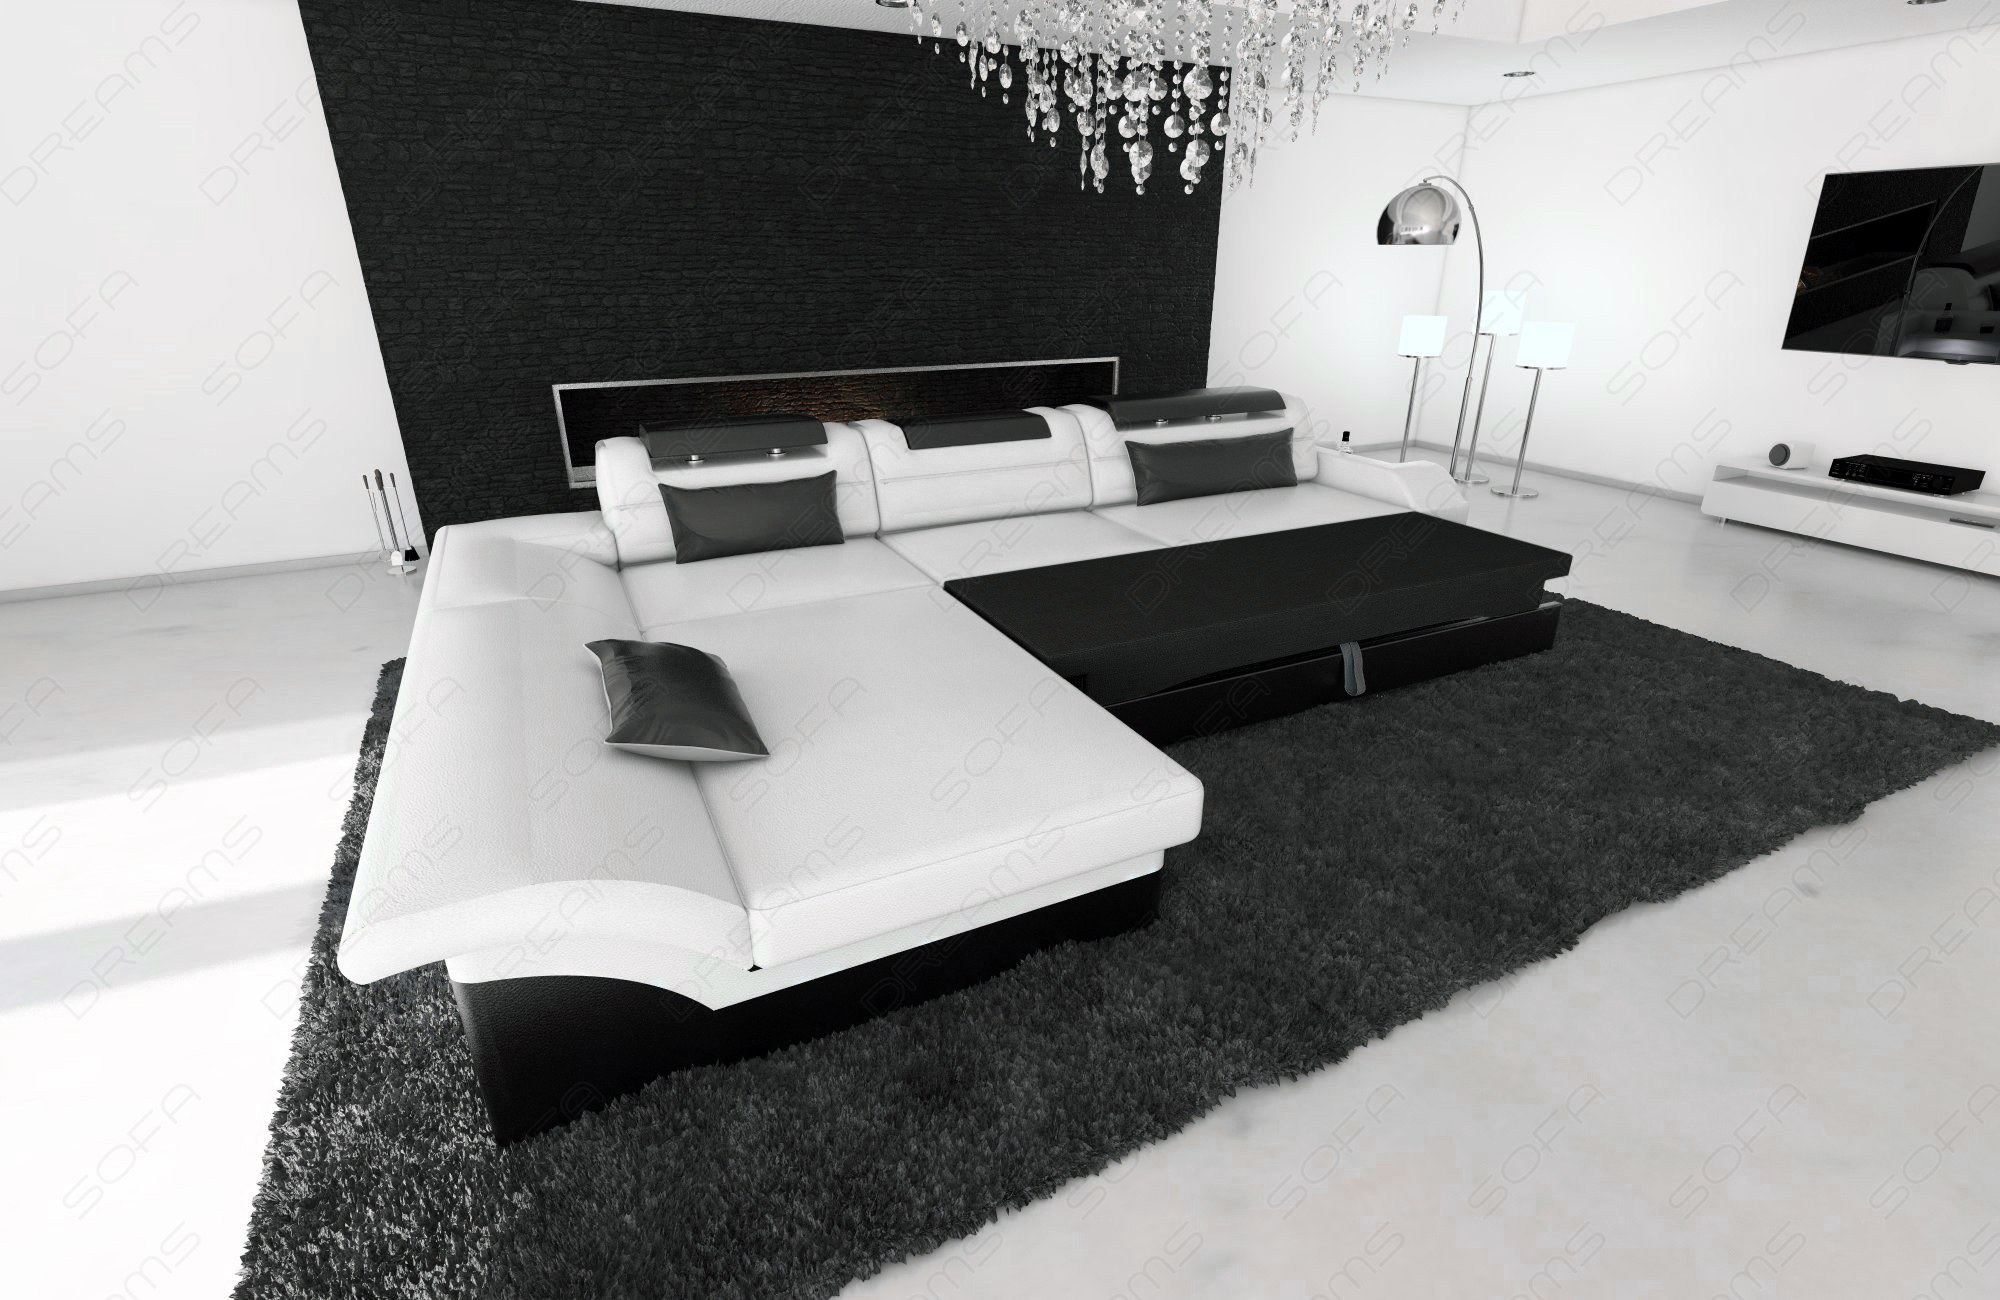 ledersofa monza l form designersofa mit rgb led. Black Bedroom Furniture Sets. Home Design Ideas